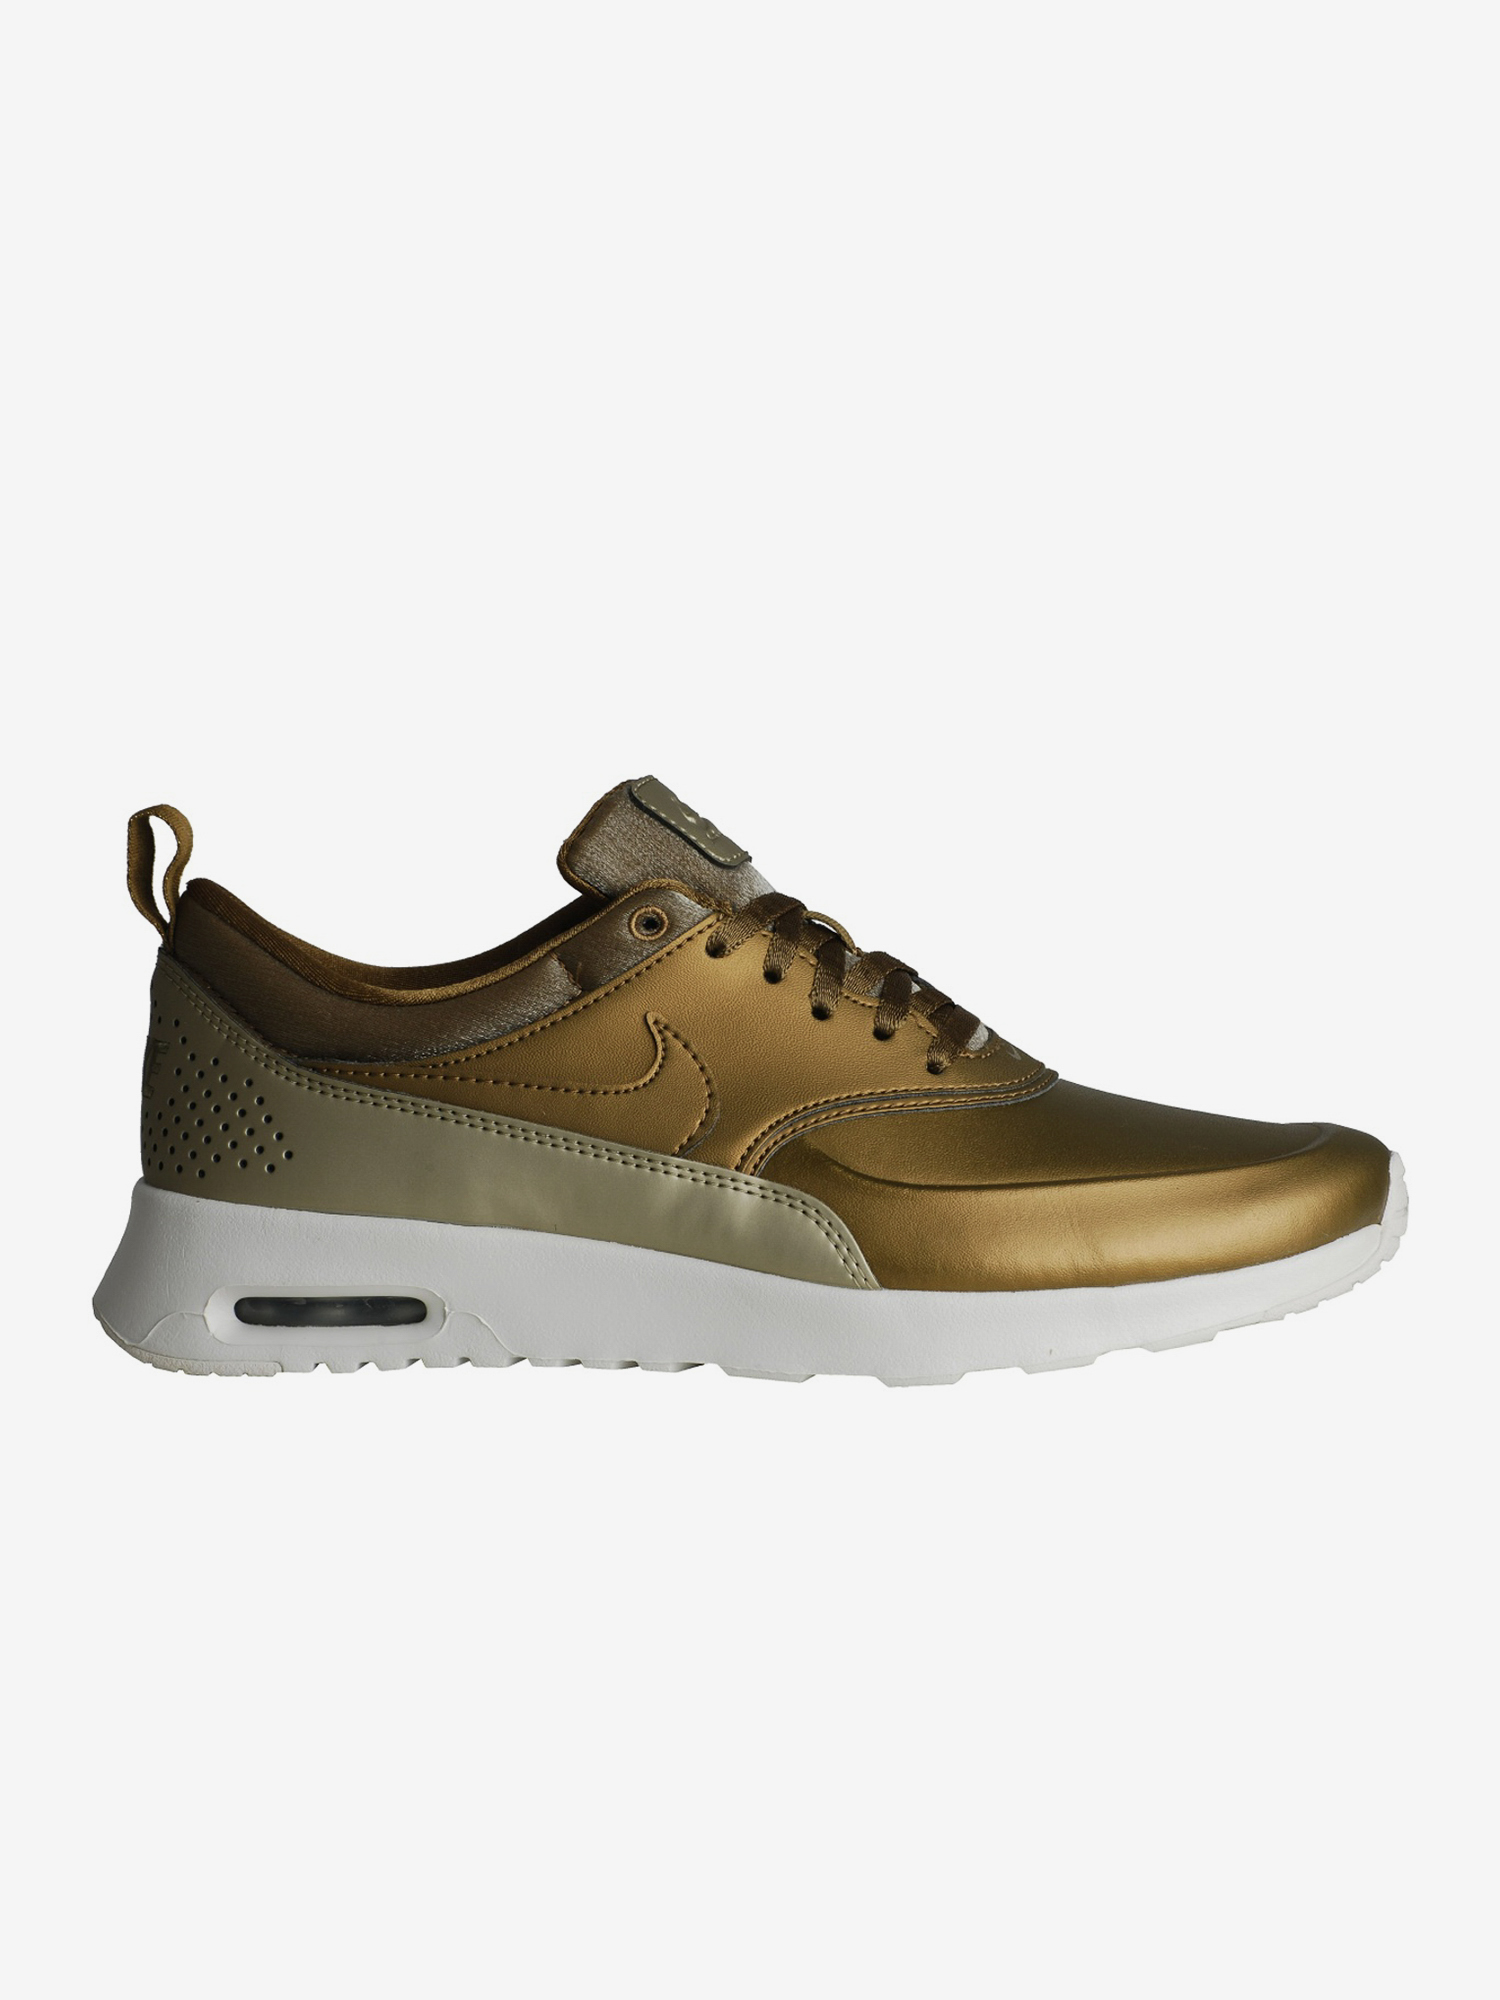 Topánky Nike Wmns Air Max Thea Prm Hnedá